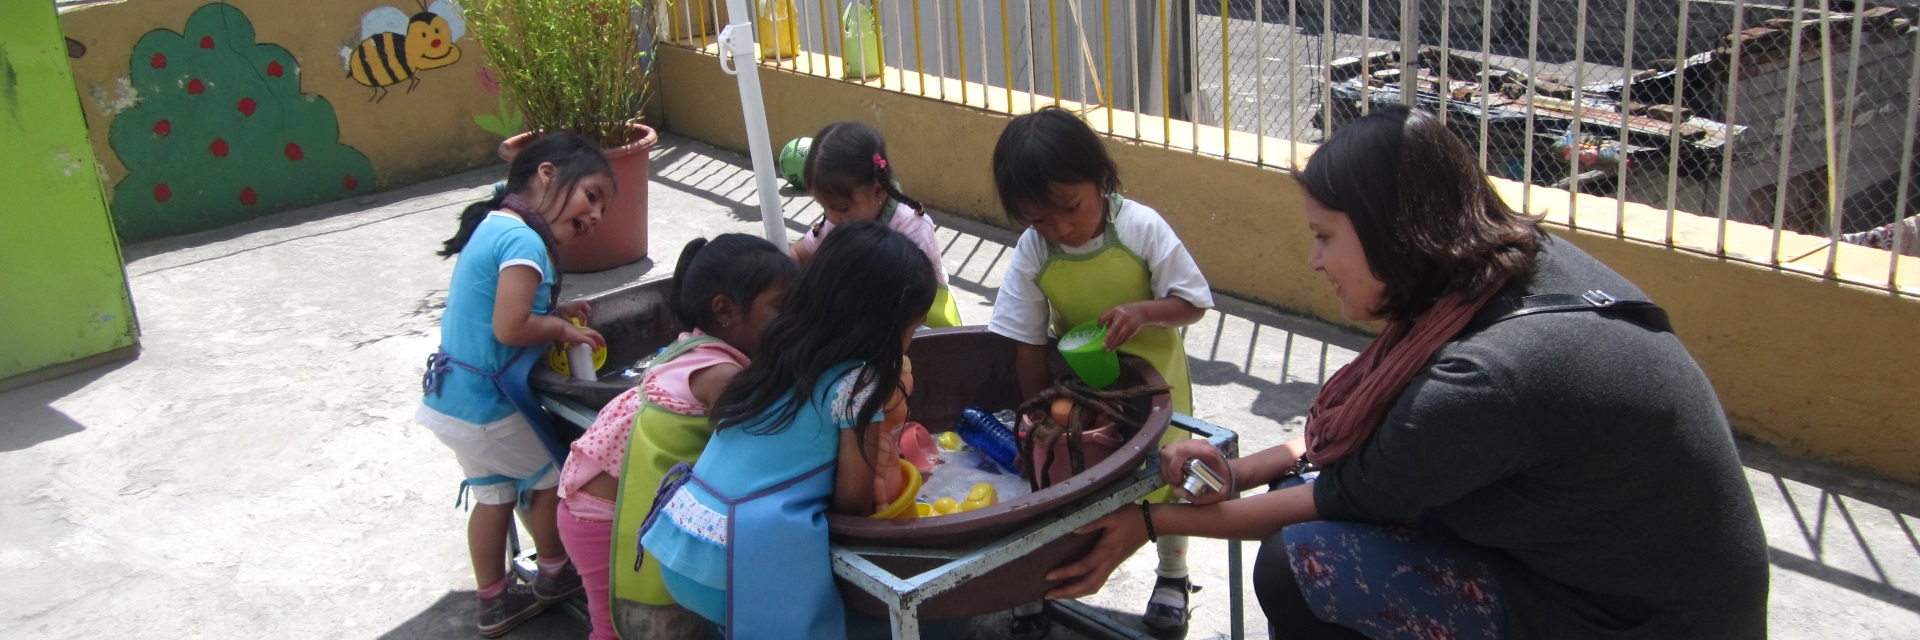 Interact with children in kid's homes